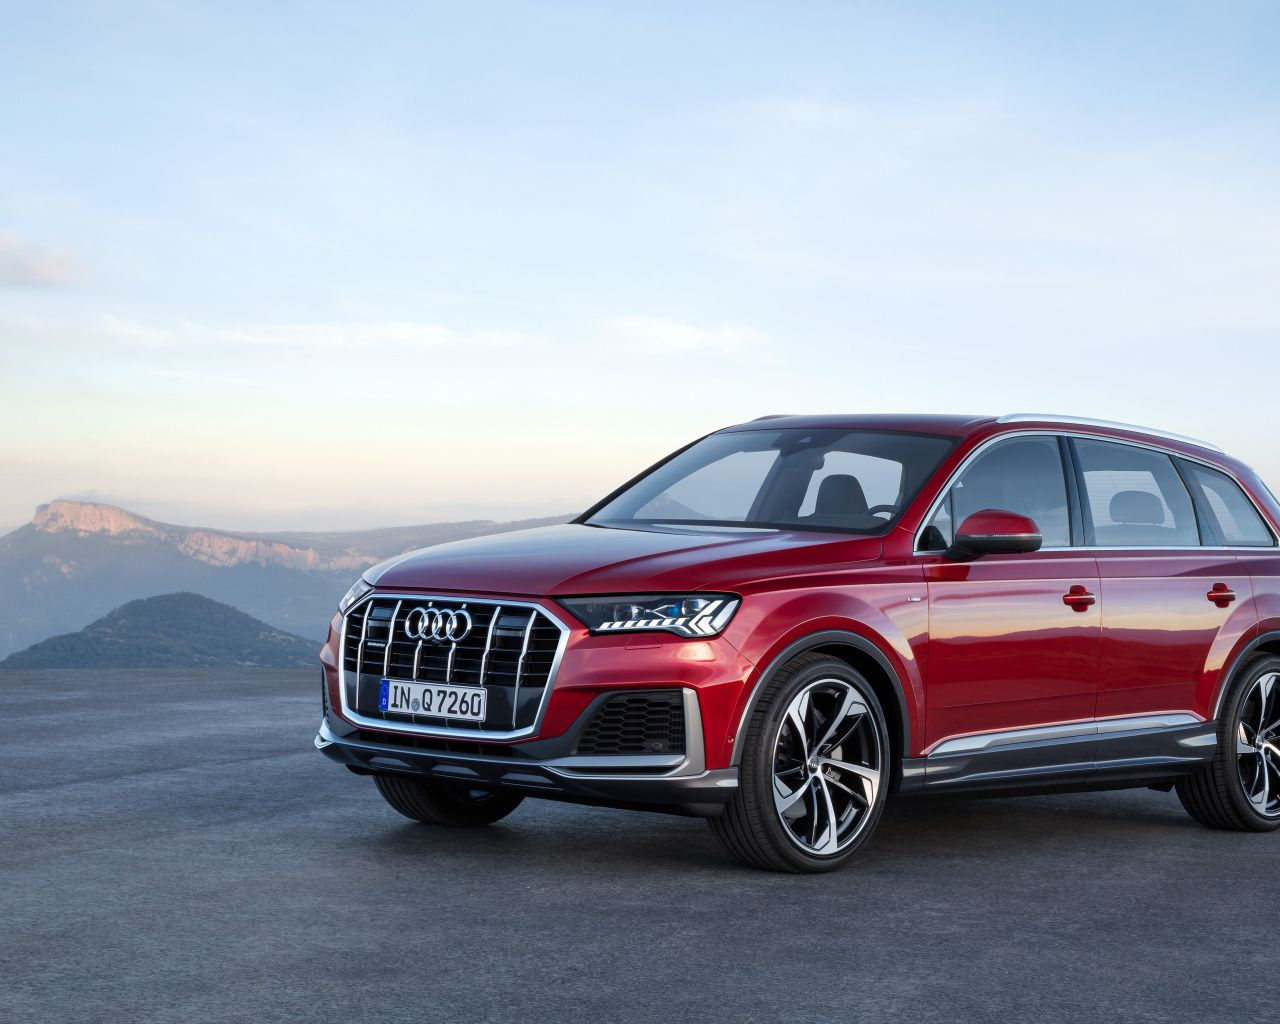 1280x1024 Audi Q7 Suv Vehicle Red Wallpaper With Images Suv